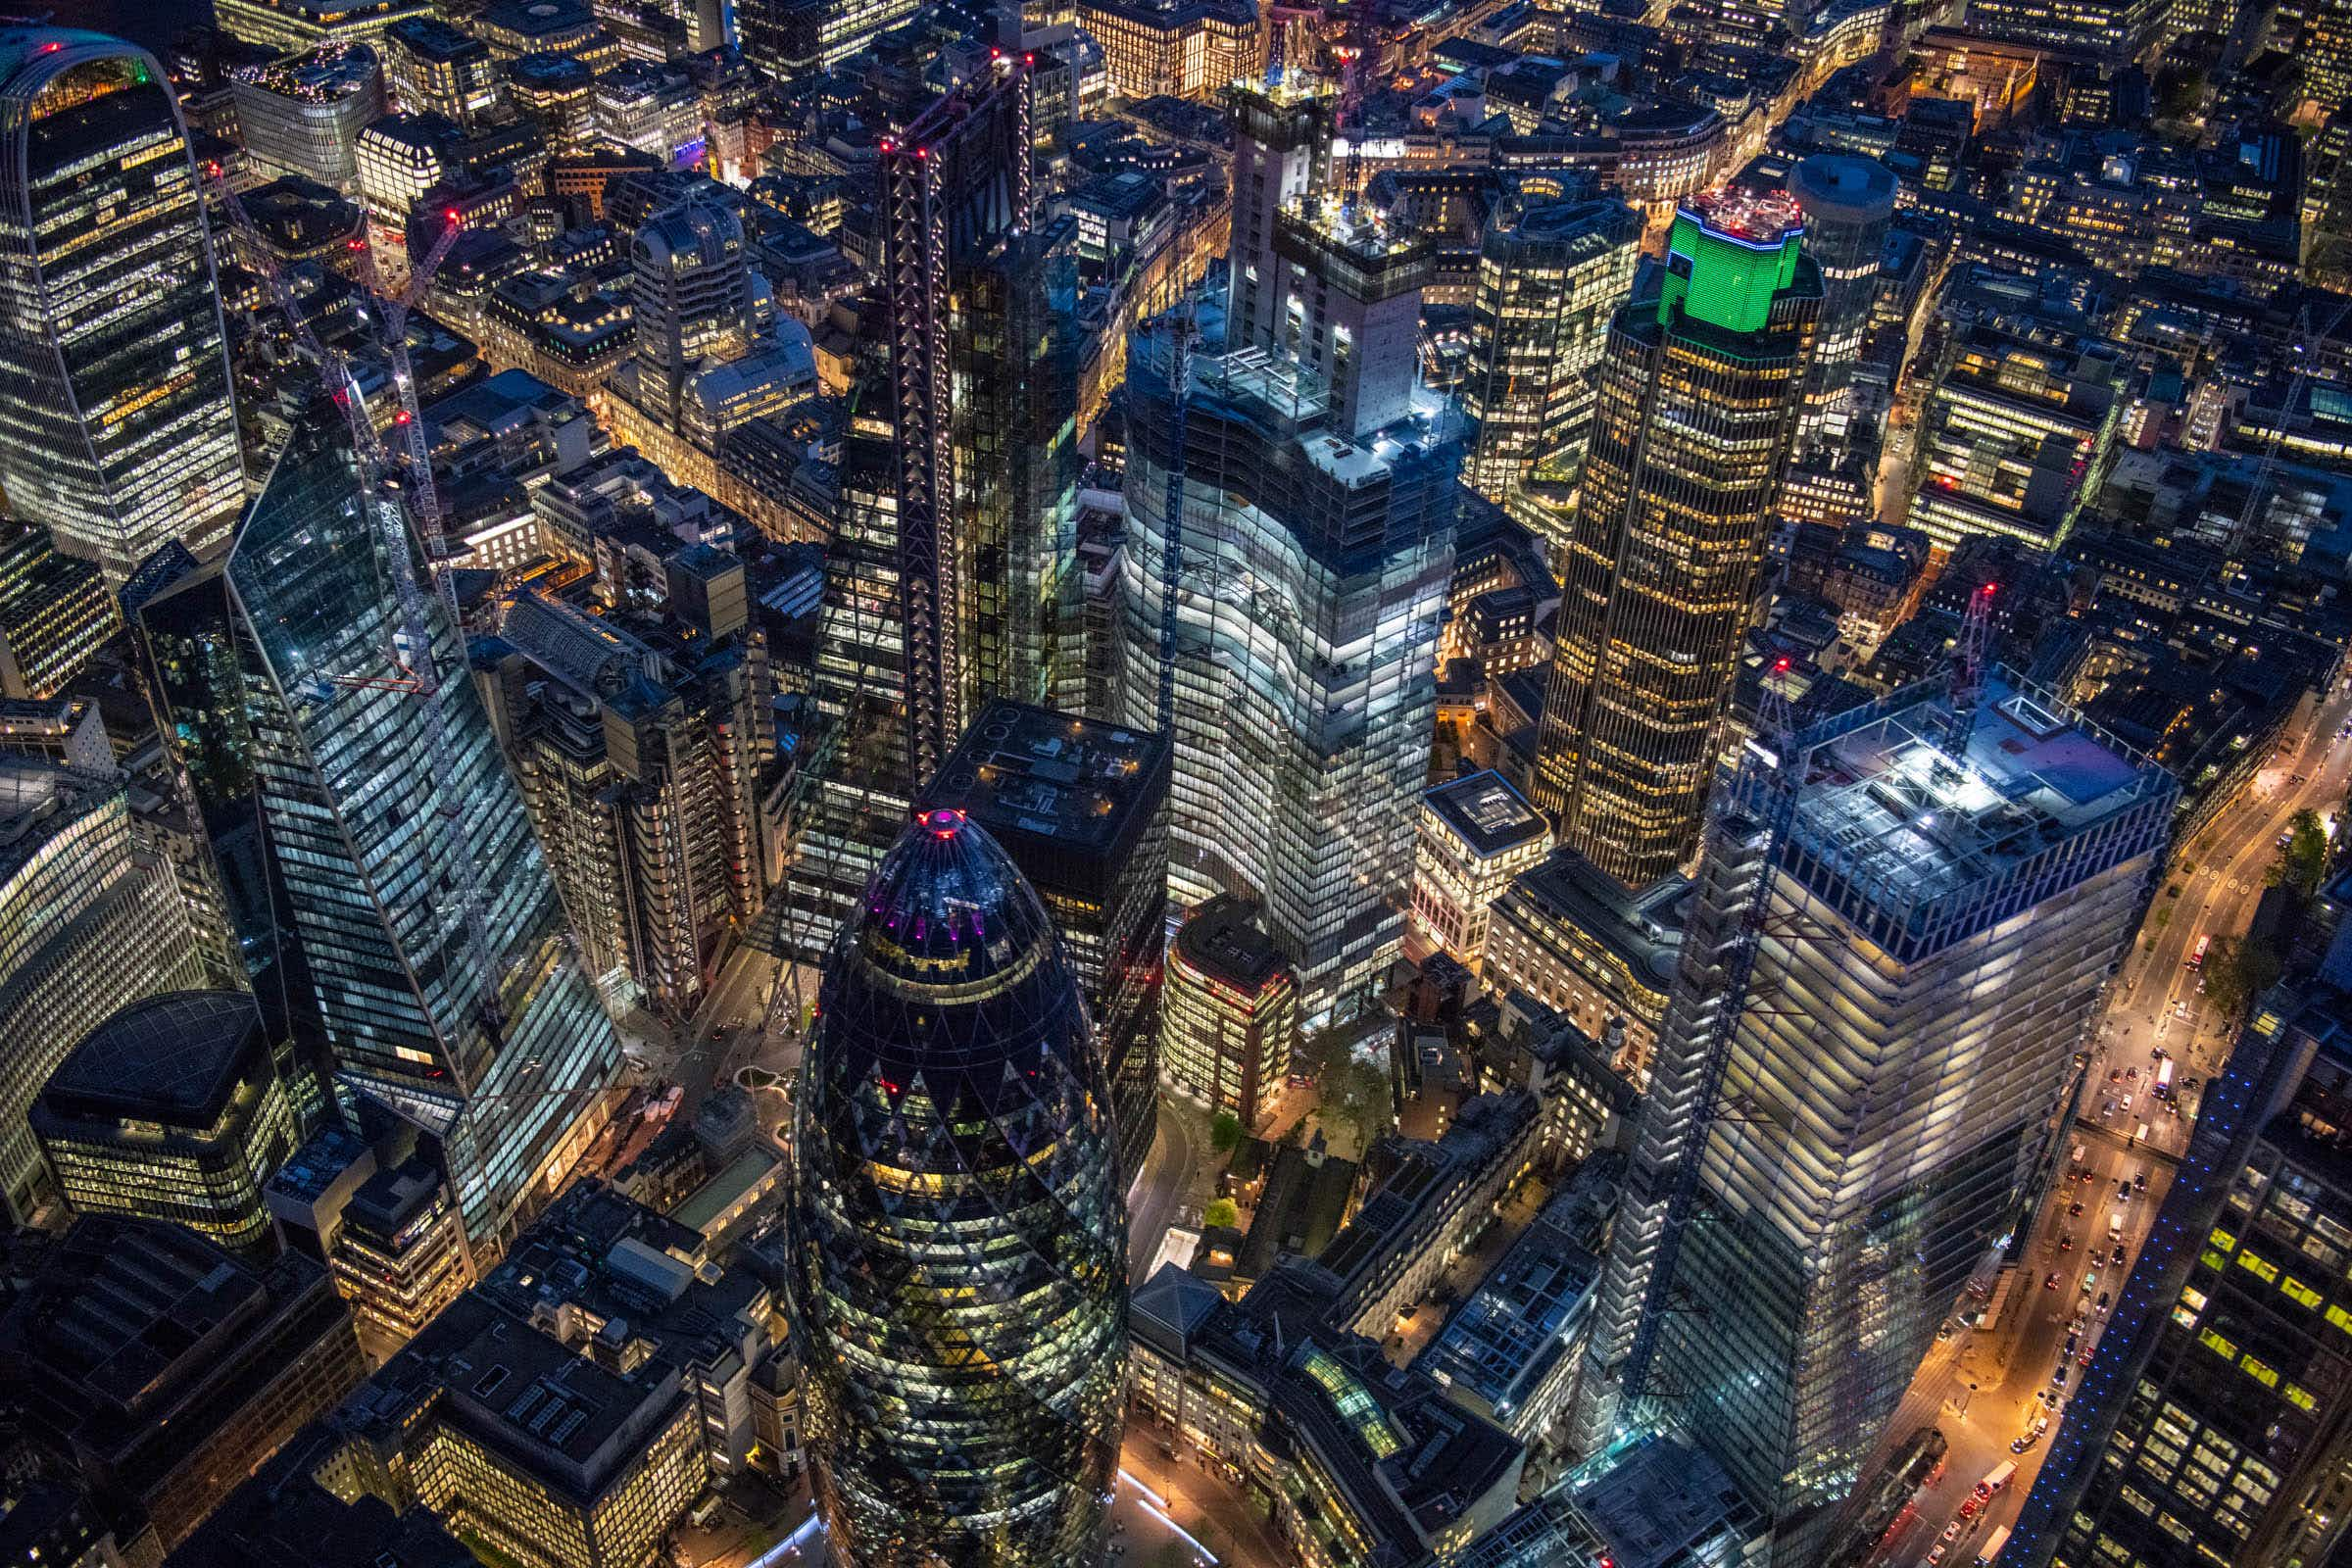 You won't believe how cool these images are of London shot from a helicopter